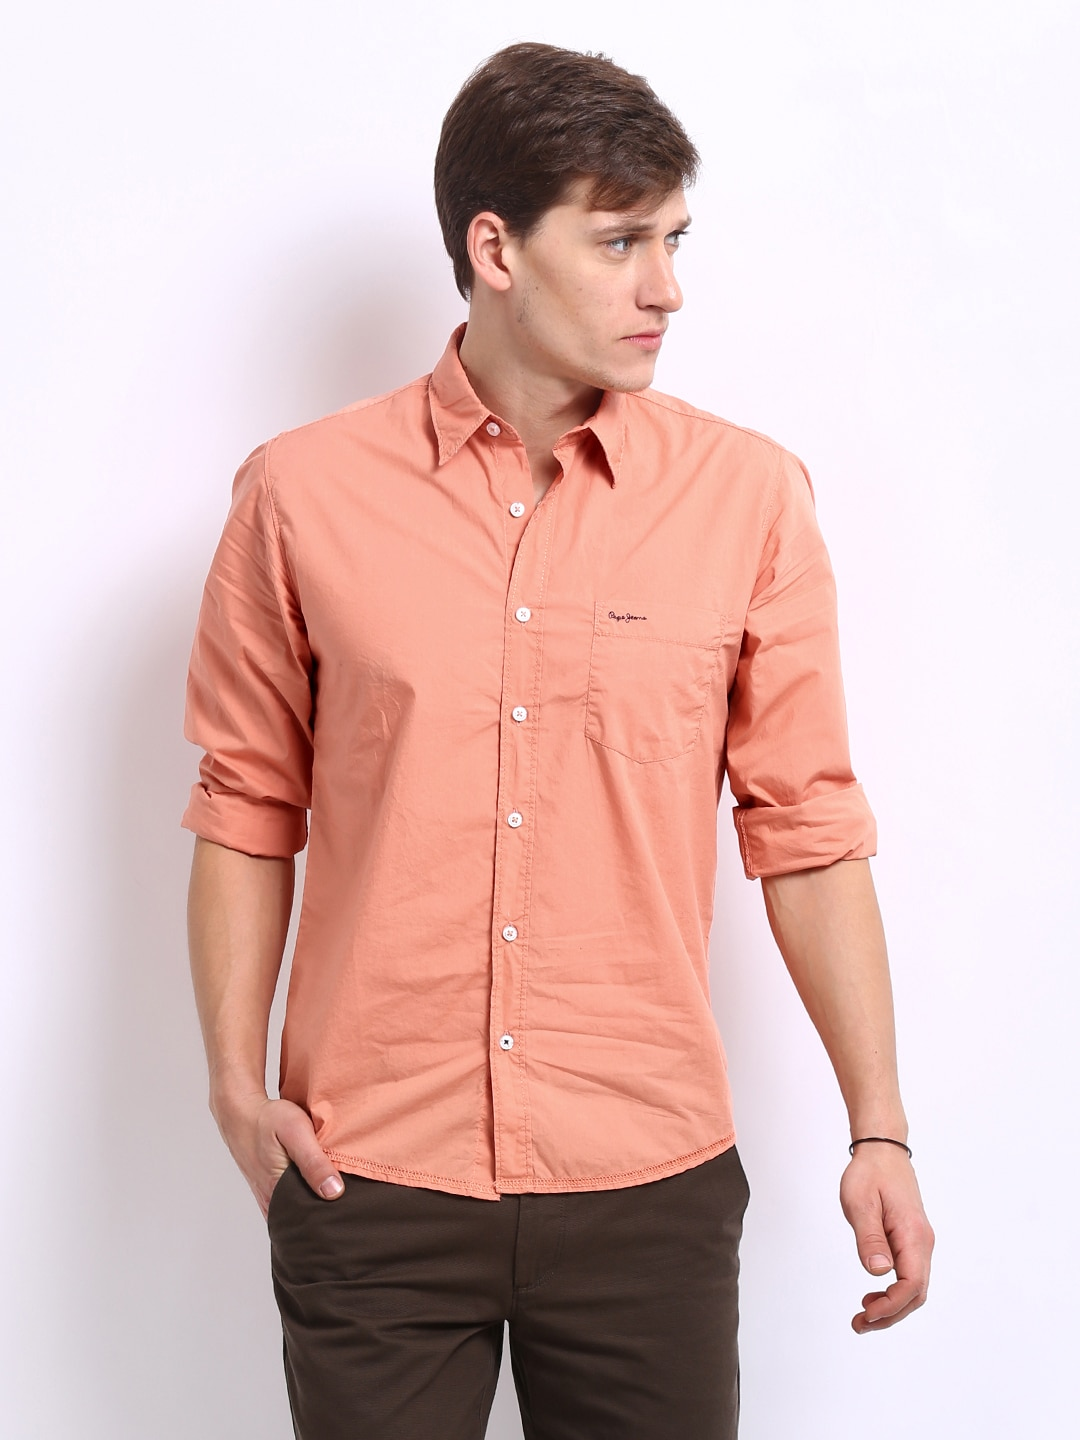 Peach Colour Shirt For Mens | Is Shirt